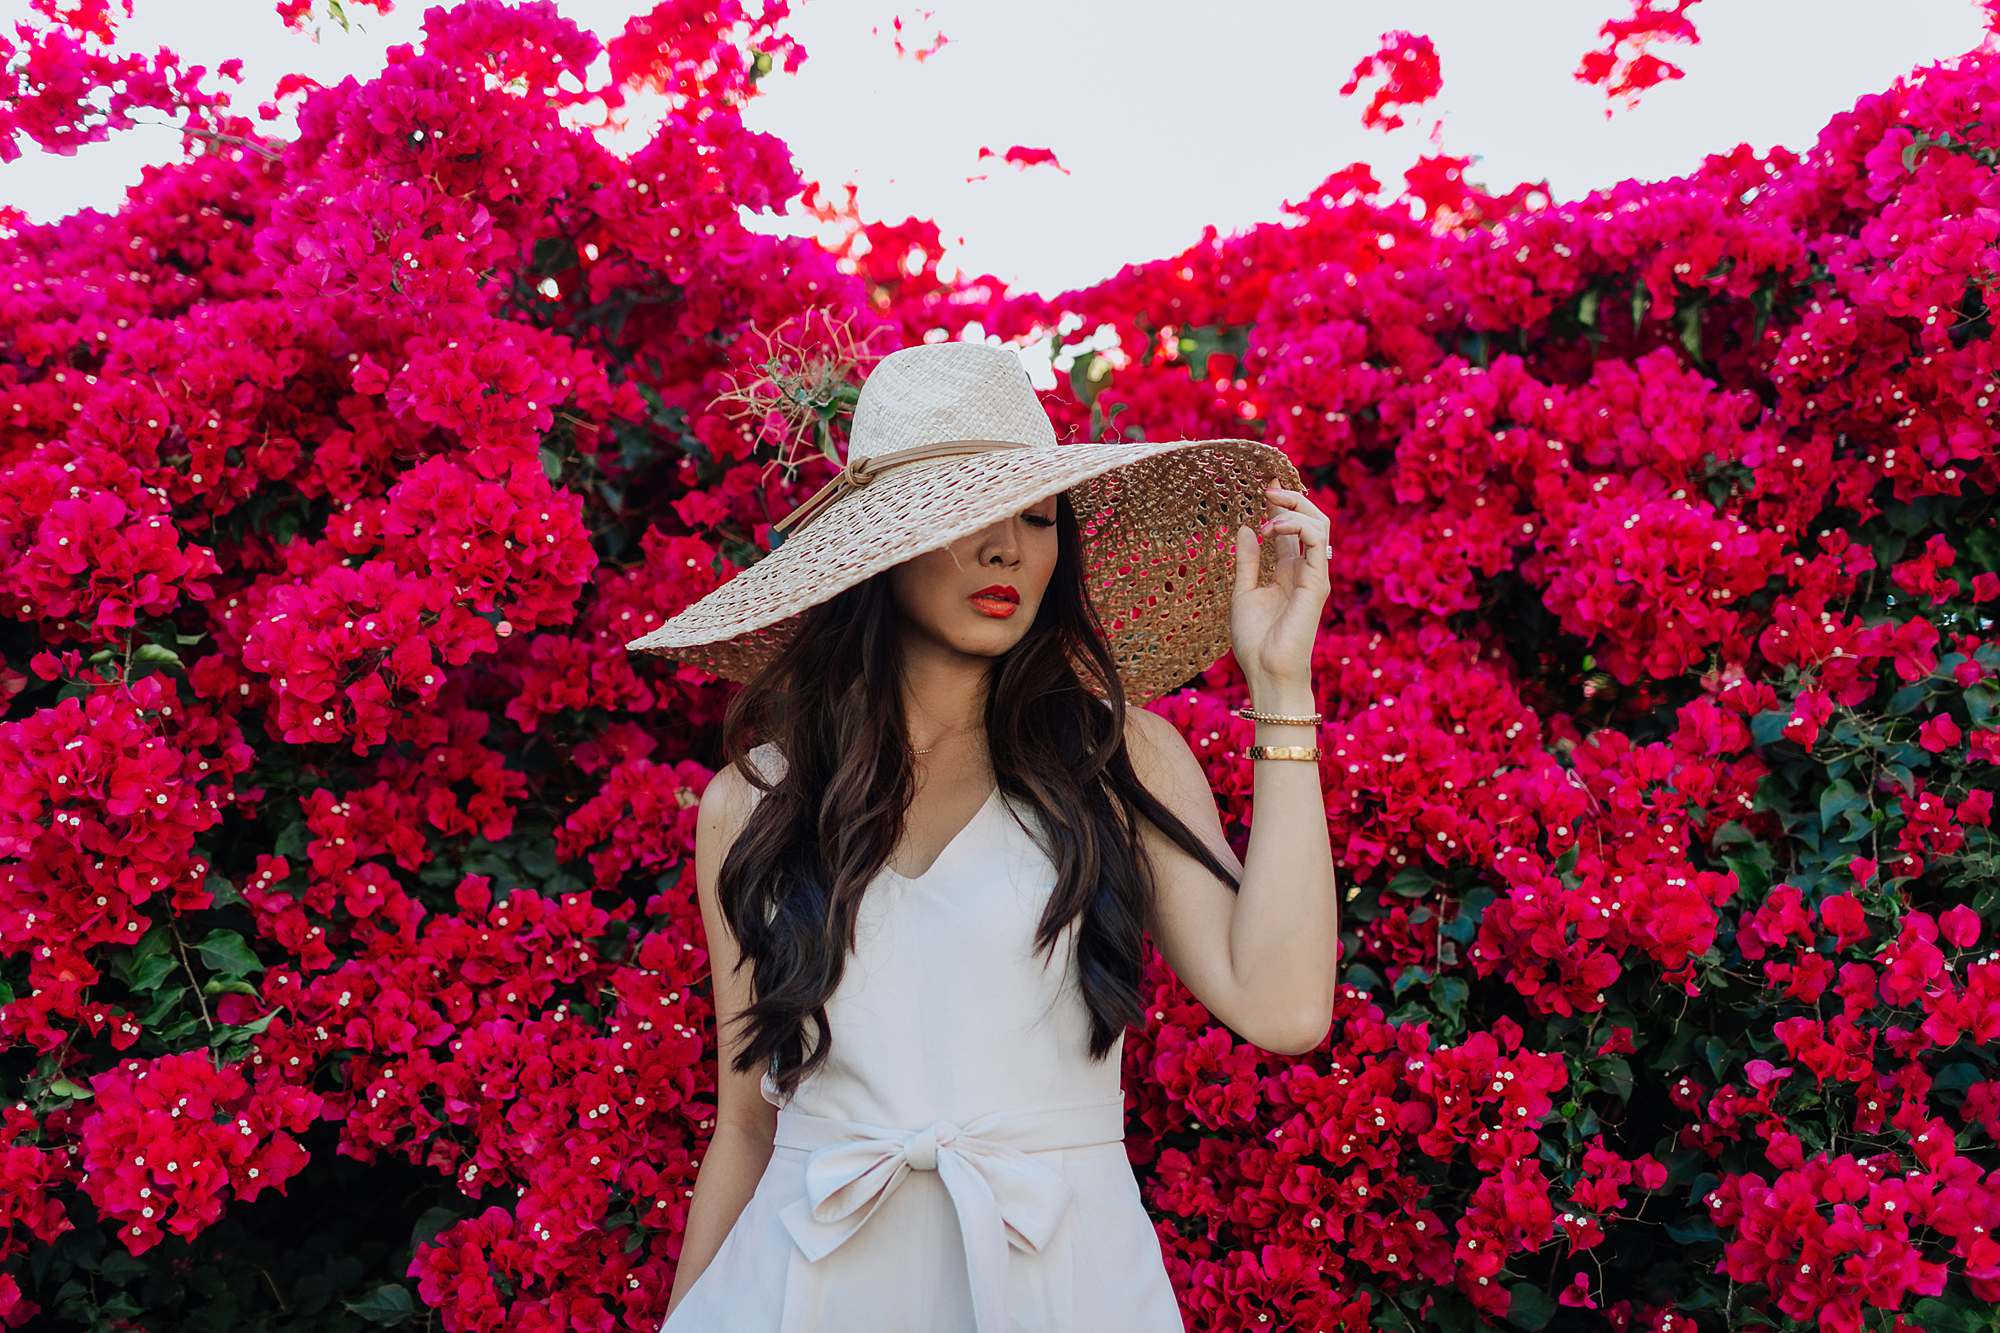 woman in pink jumpsuit infant of Bougainvillea plant wearing large straw hat oversized